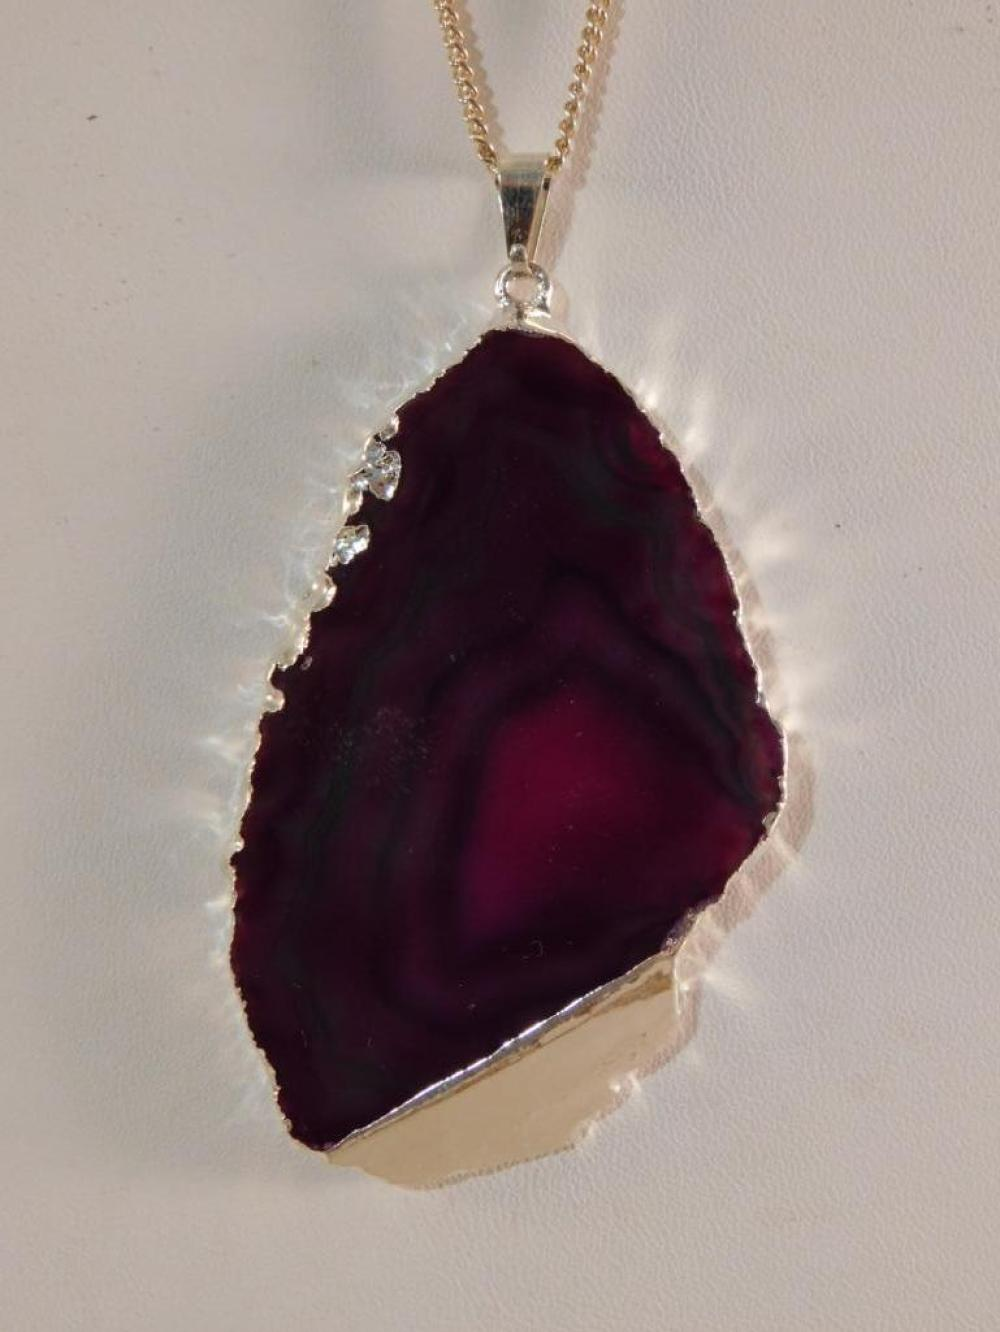 AGATE SLICE PENDANT ON CHAIN ROCK STONE LAPIDARY SPECIMEN